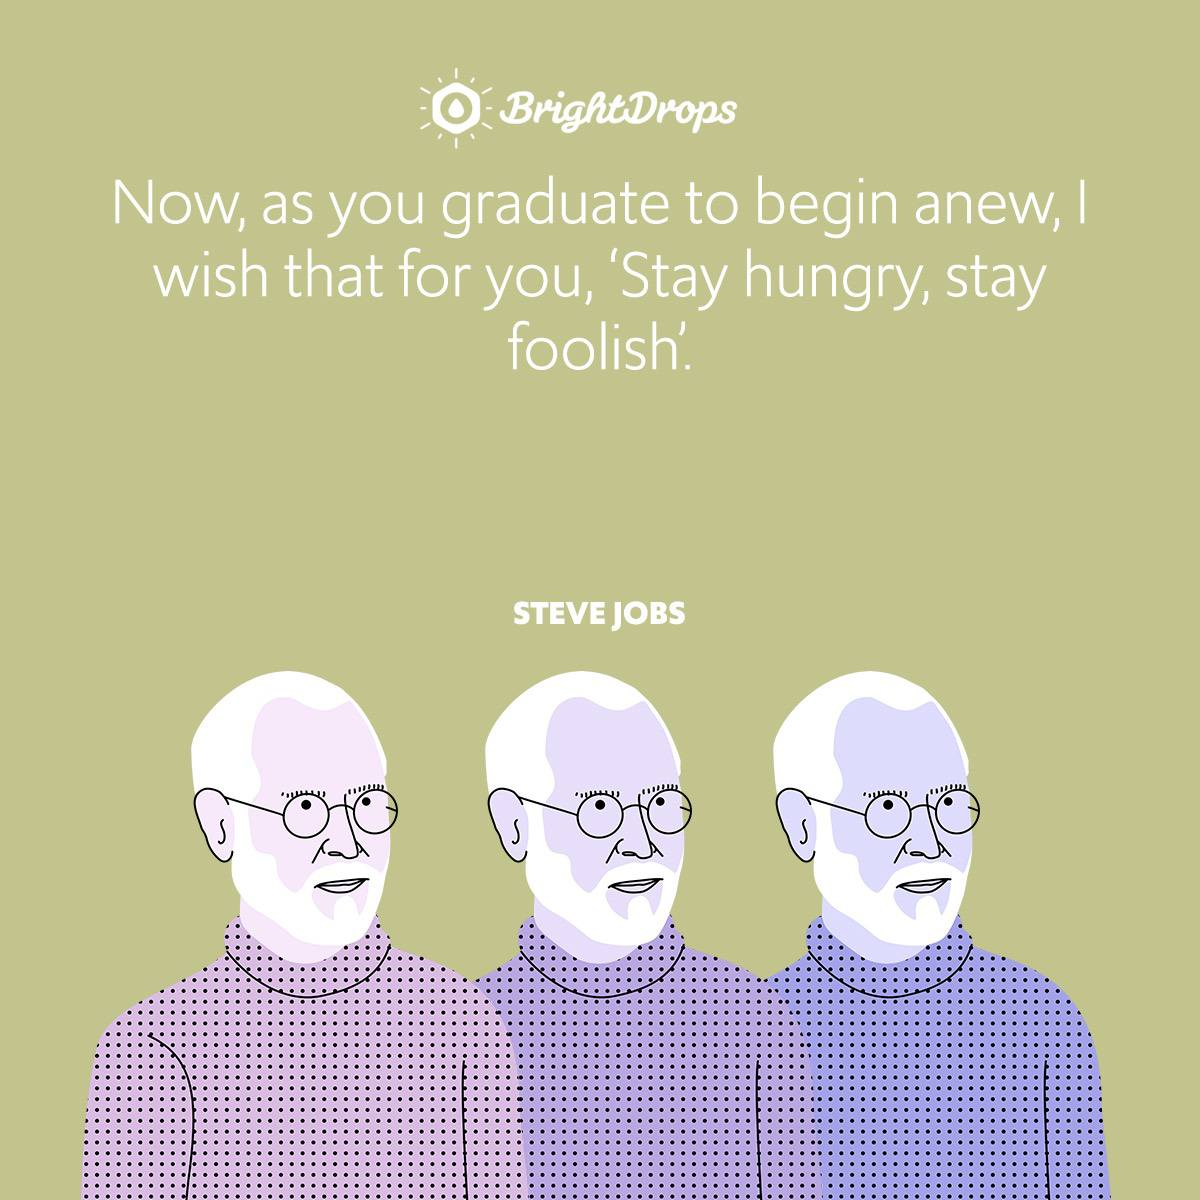 Now, as you graduate to begin anew, I wish that for you, 'Stay hungry, stayfoolish'.